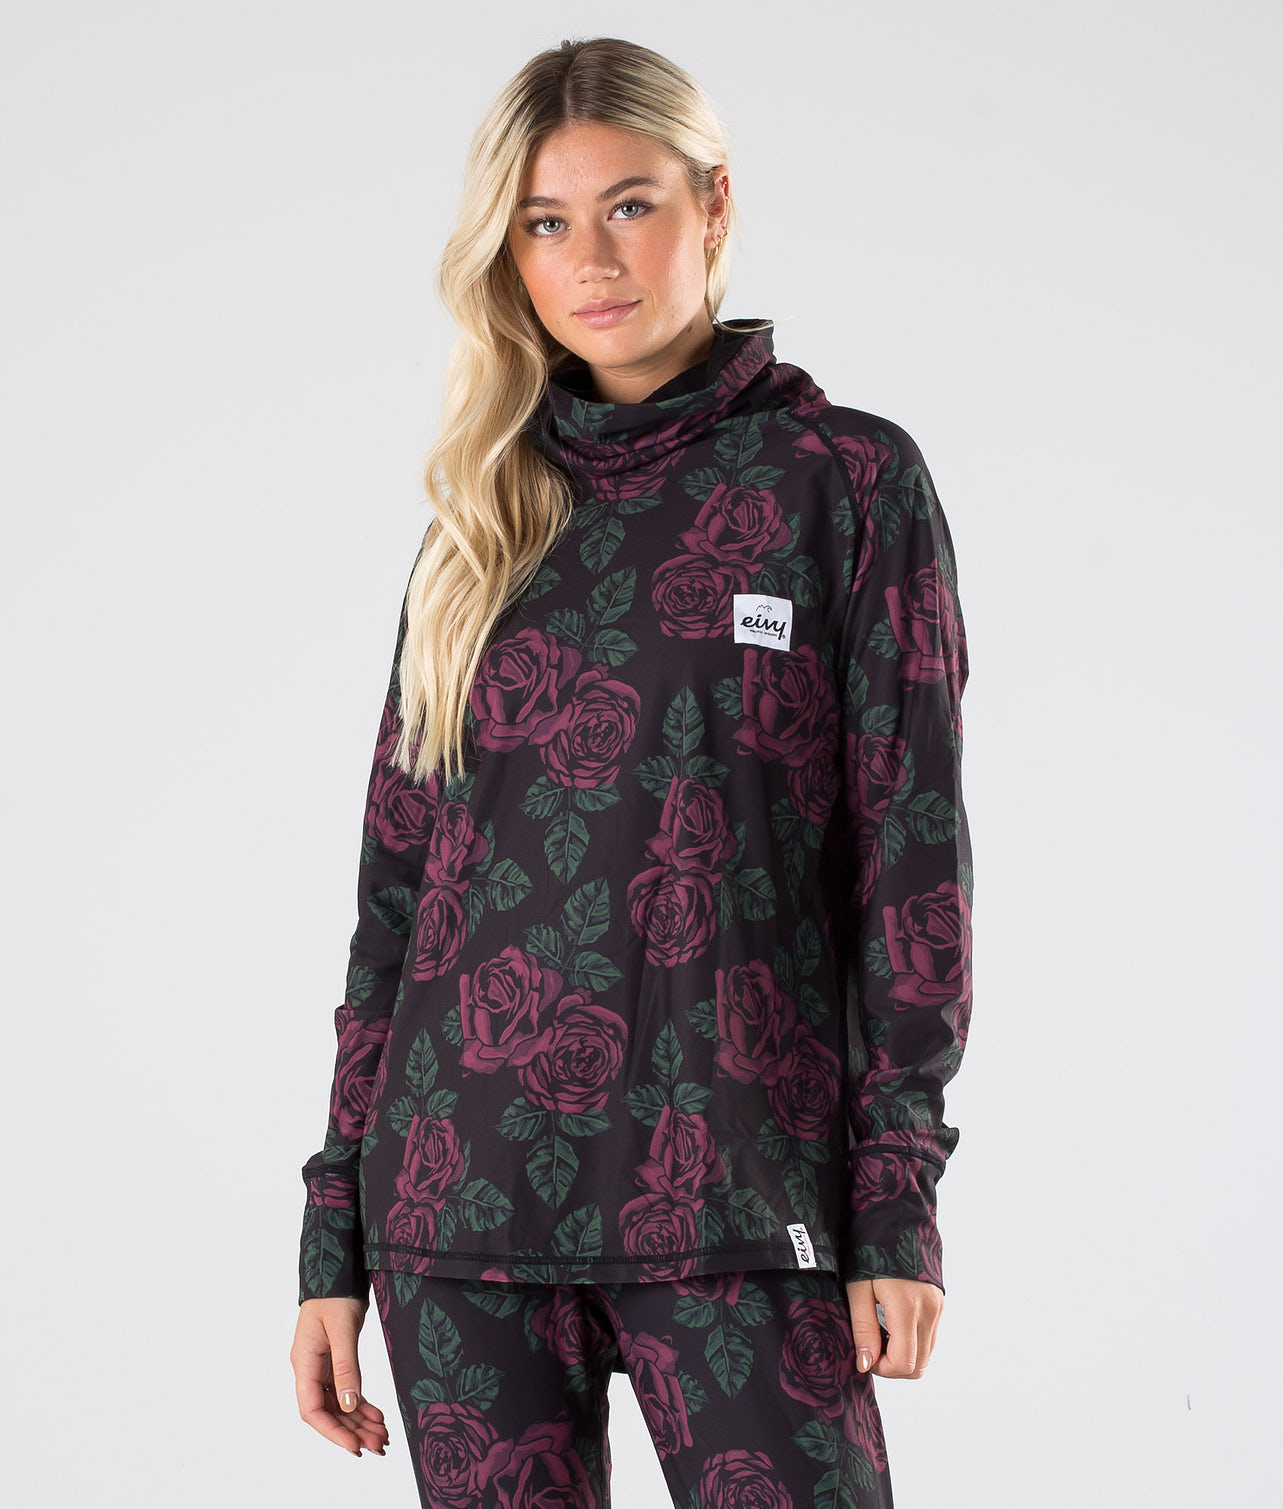 Buy Boyfriend Gaiter Top Base Layer Top from Eivy at Ridestore.com - Always free shipping, free returns and 30 days money back guarantee